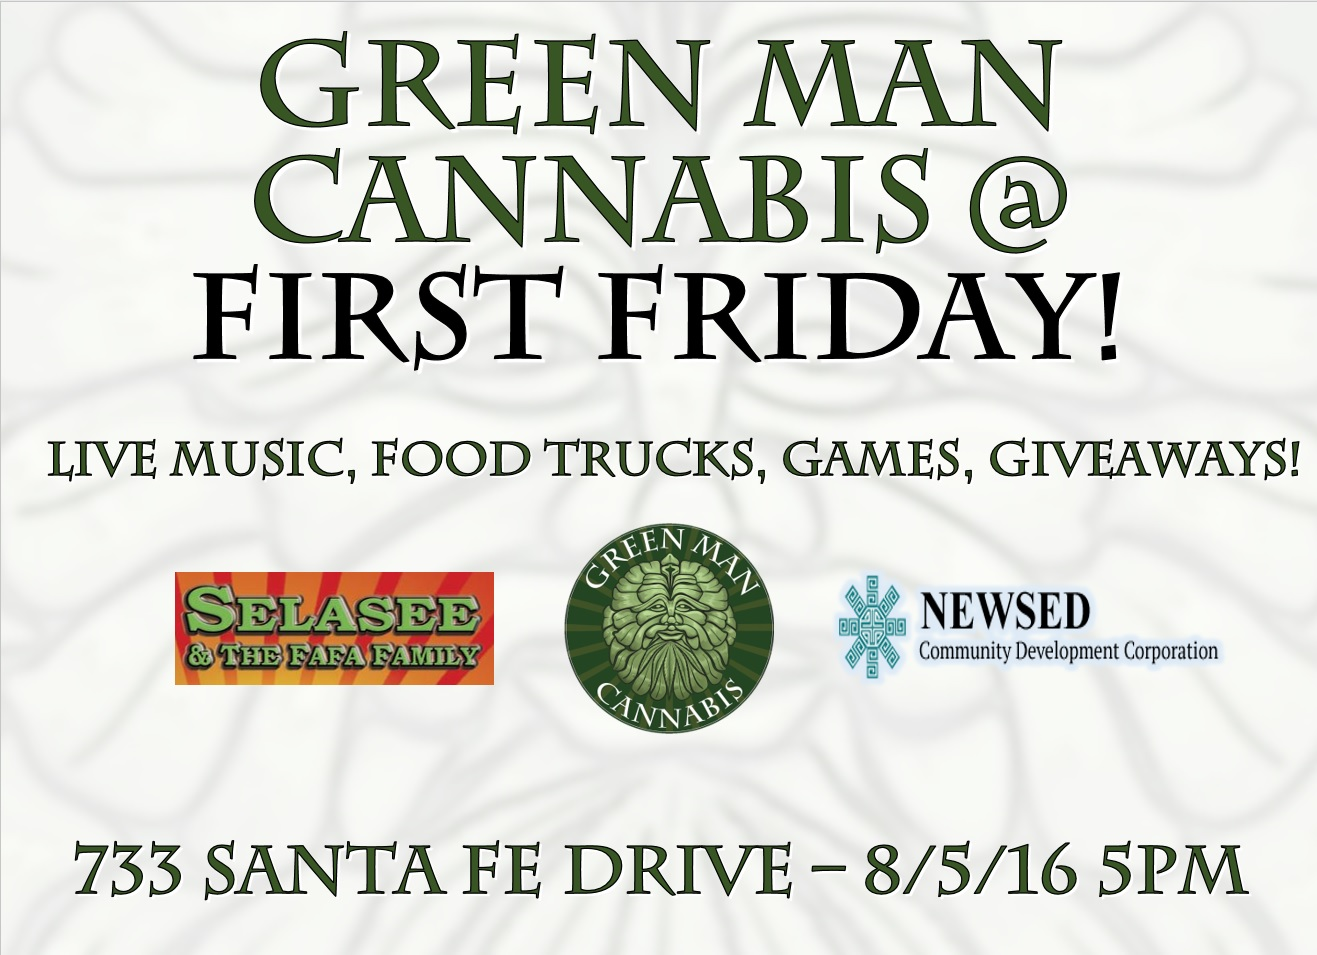 7- FIRST FRIDAY IN STORE